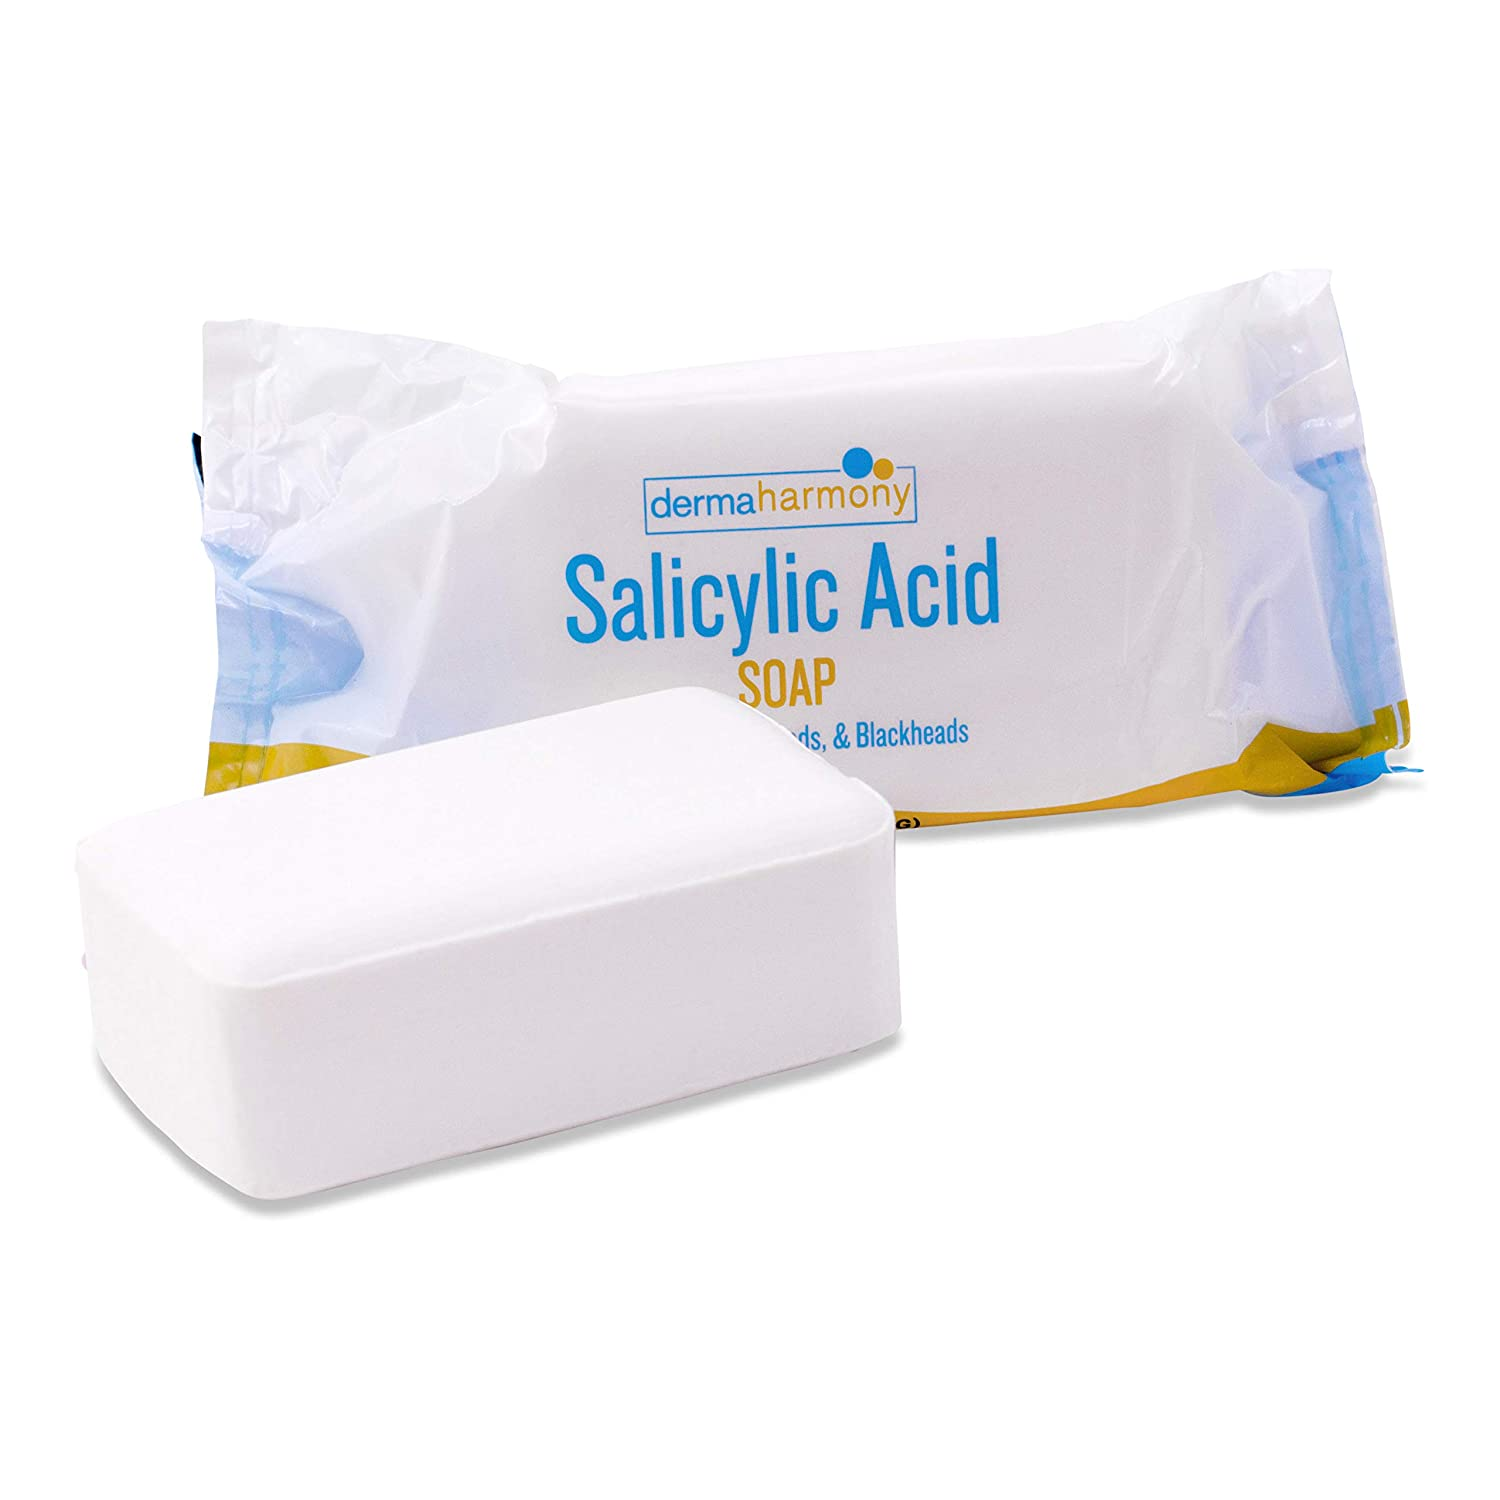 Salicylic Acid Soap 5 Bars